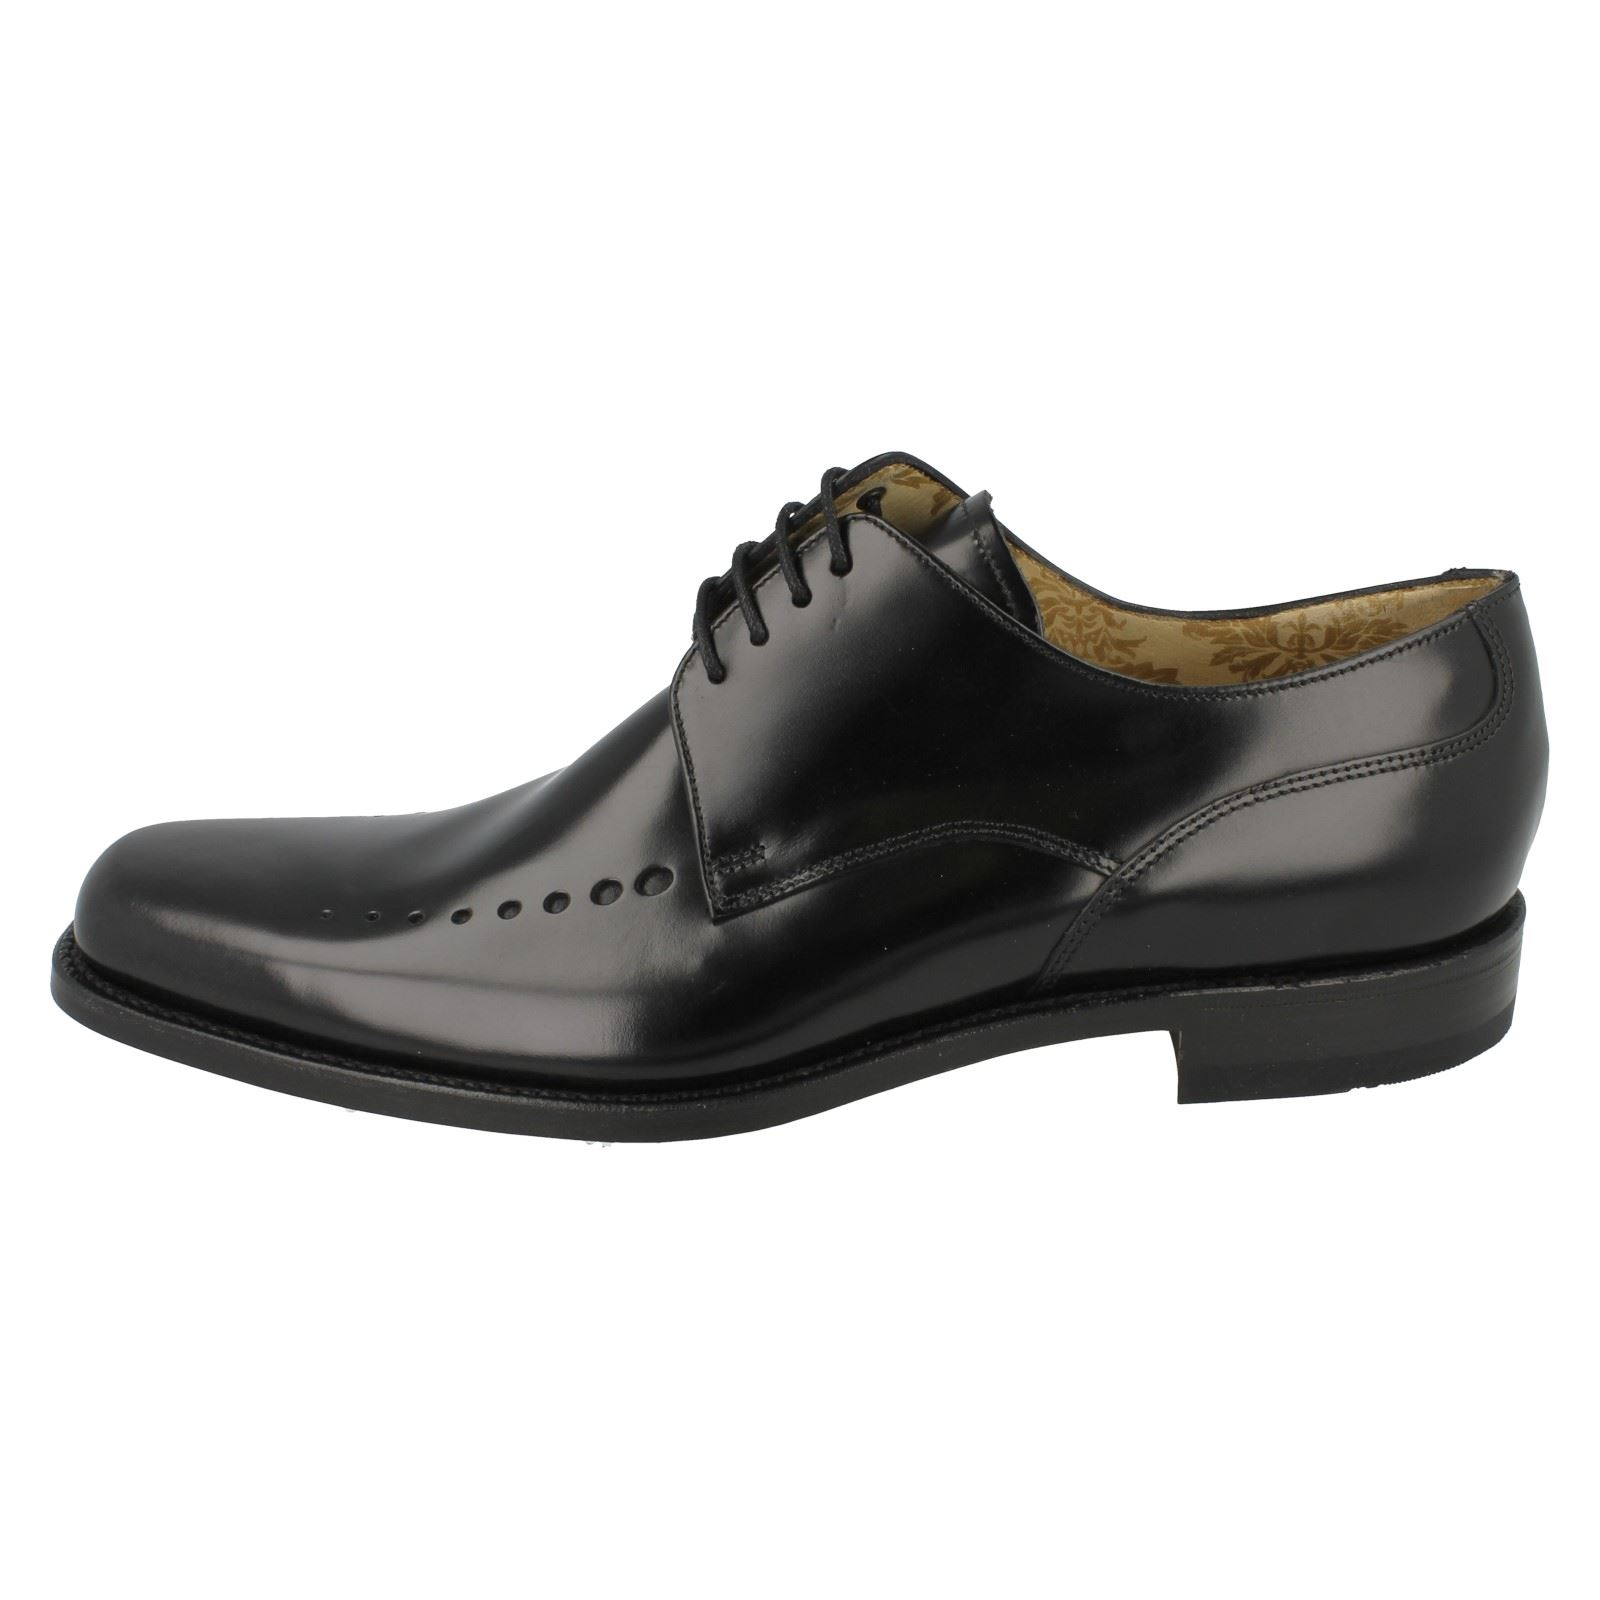 Uomo Loake Formal Leder F Fitting Poseidon Schuhes the Style - Poseidon Fitting 013d2d